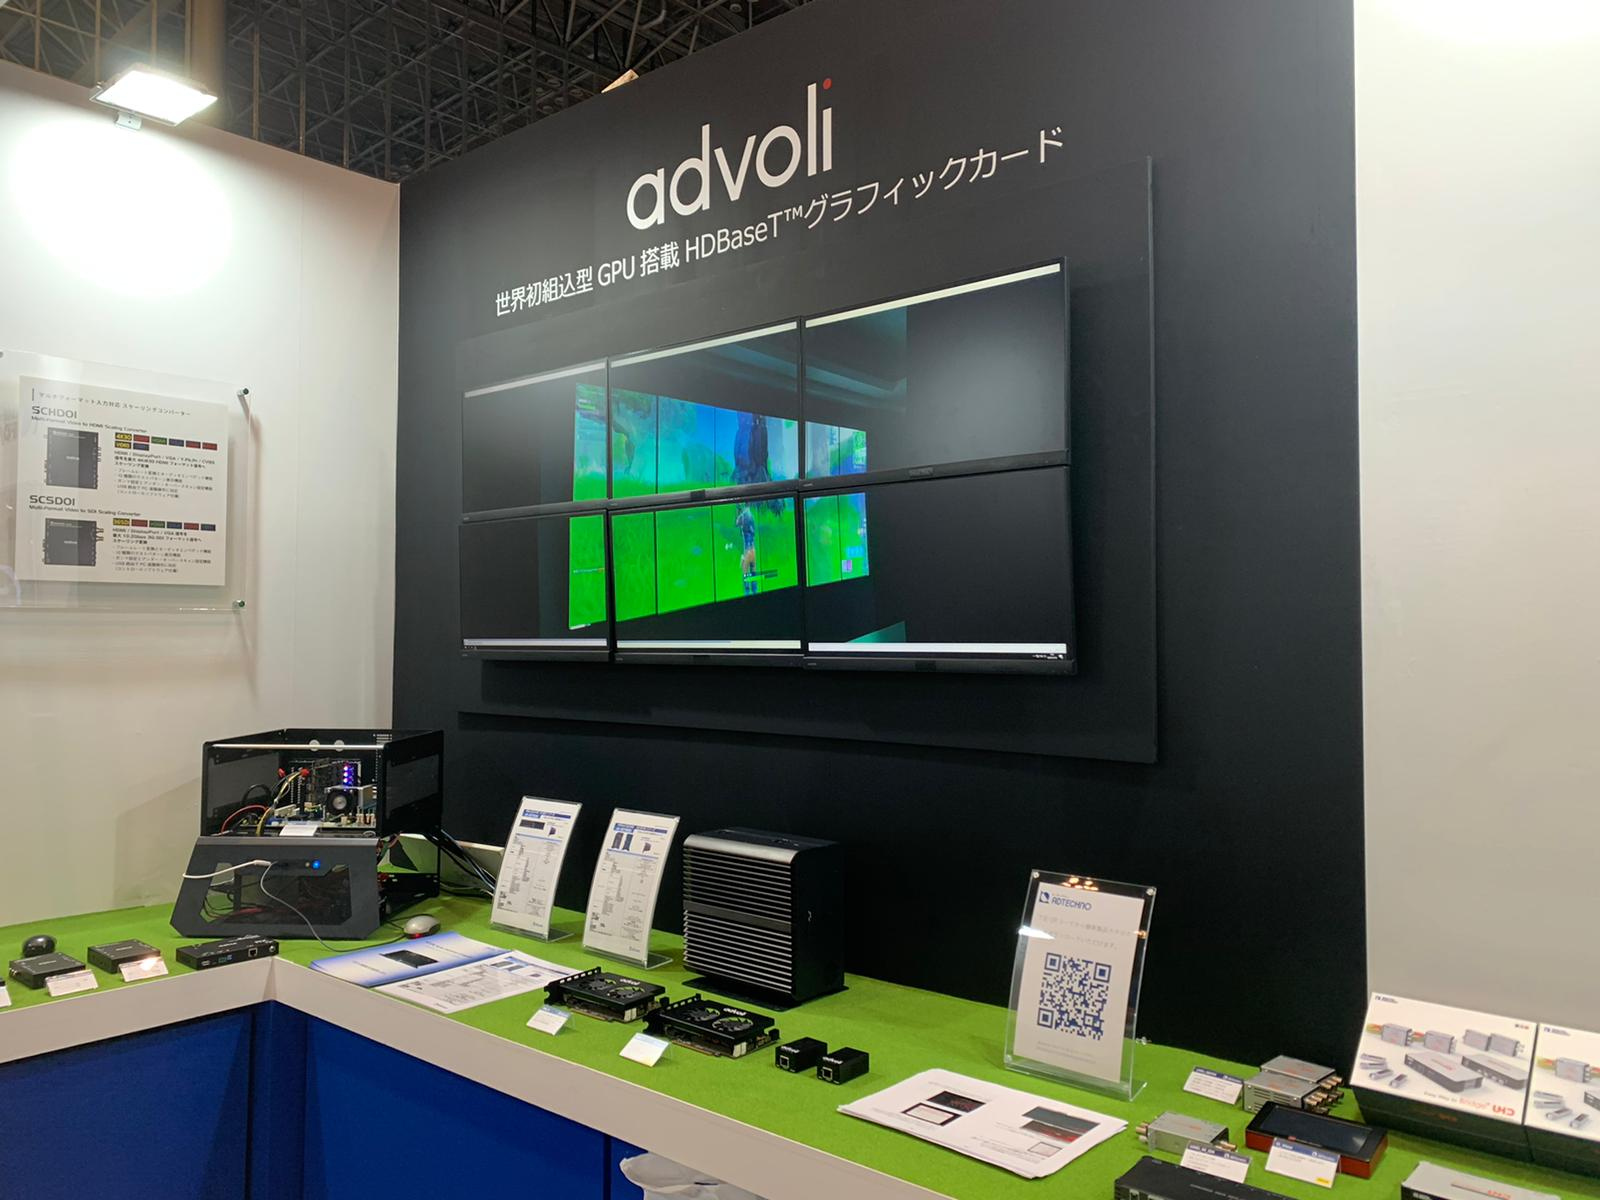 advoli at Inter Bee 2019 with ADTECHNO